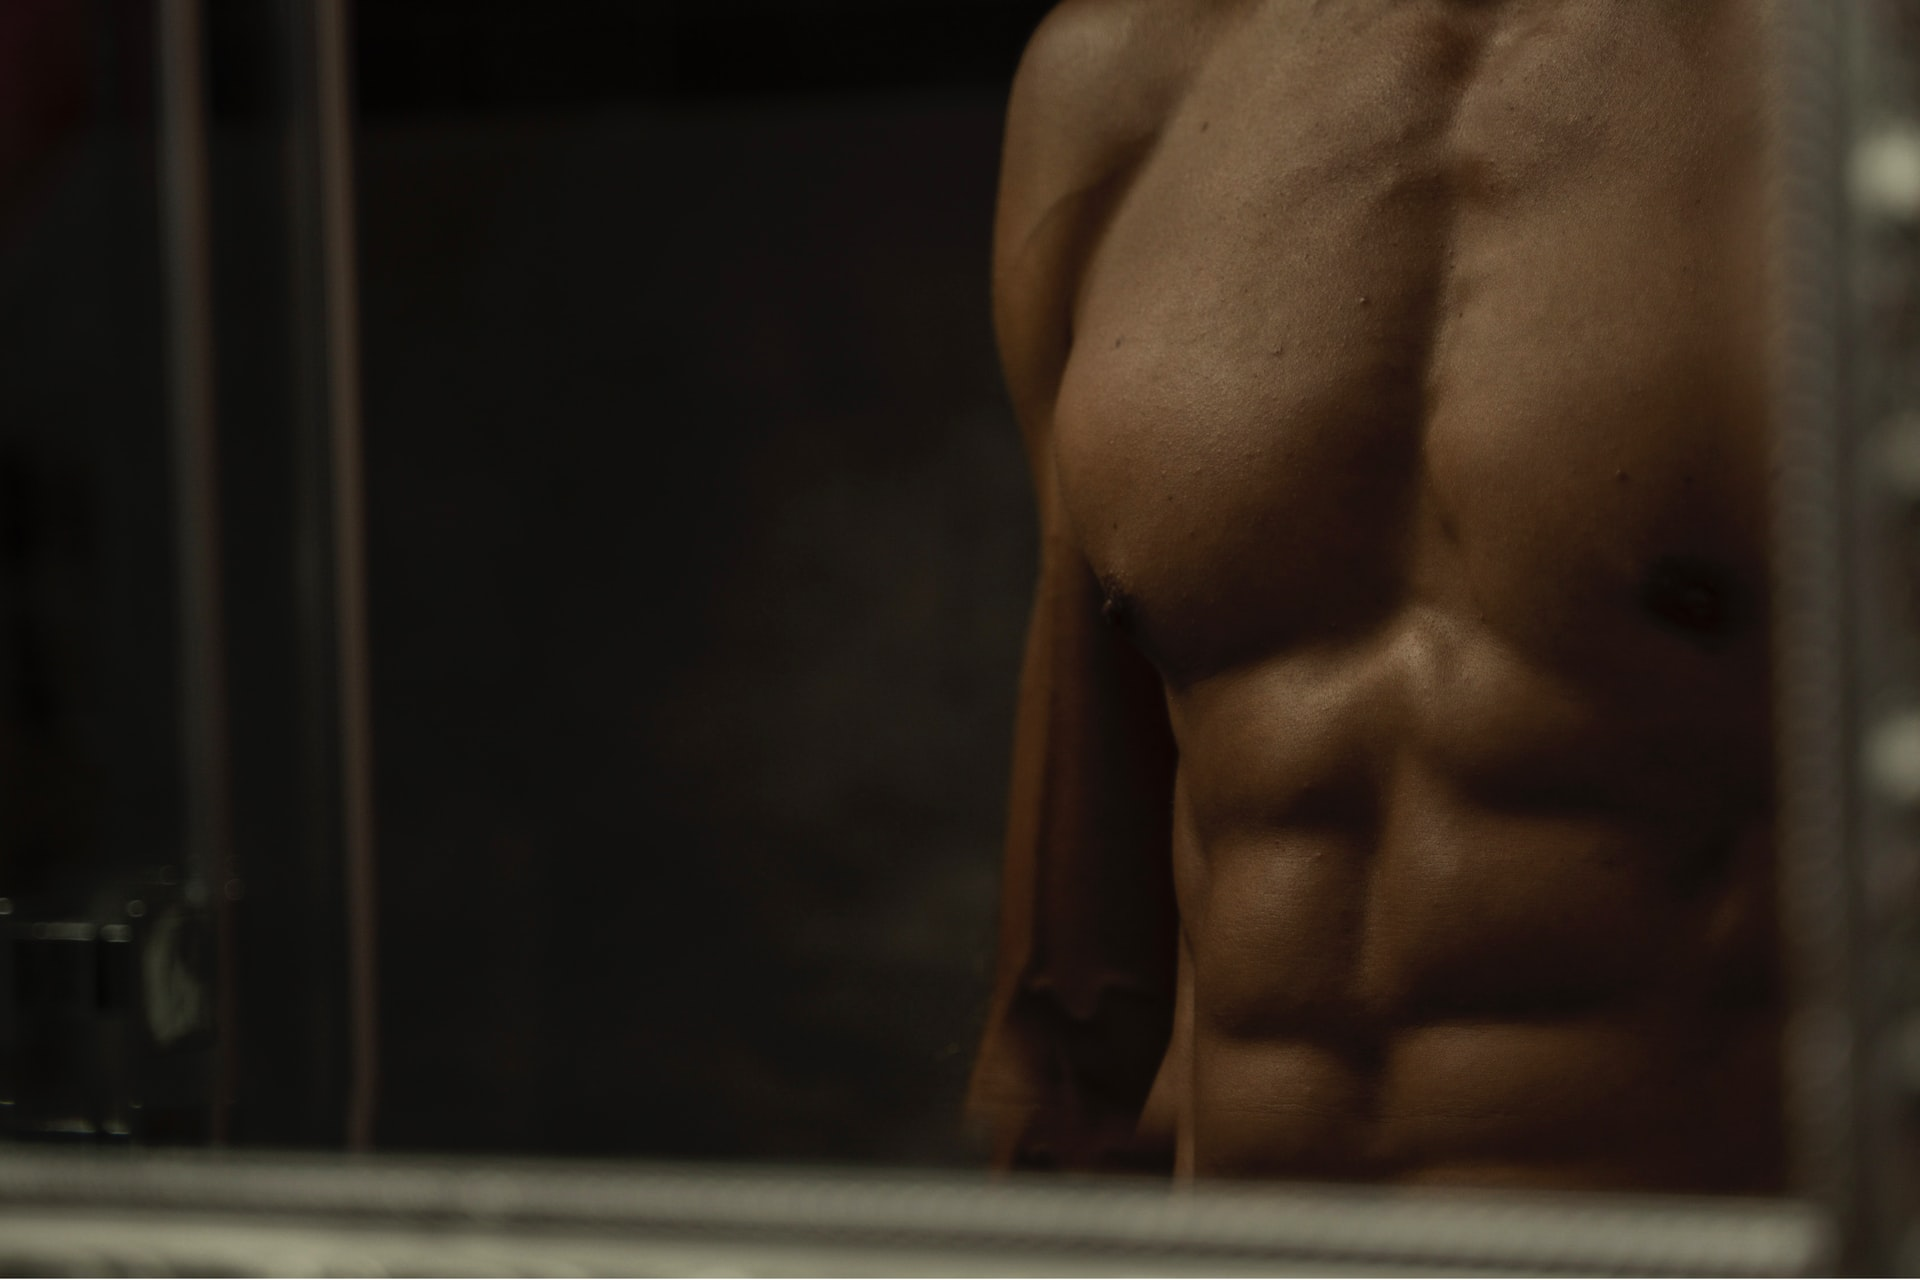 closeup of toned male body, how long does cool sculpting last